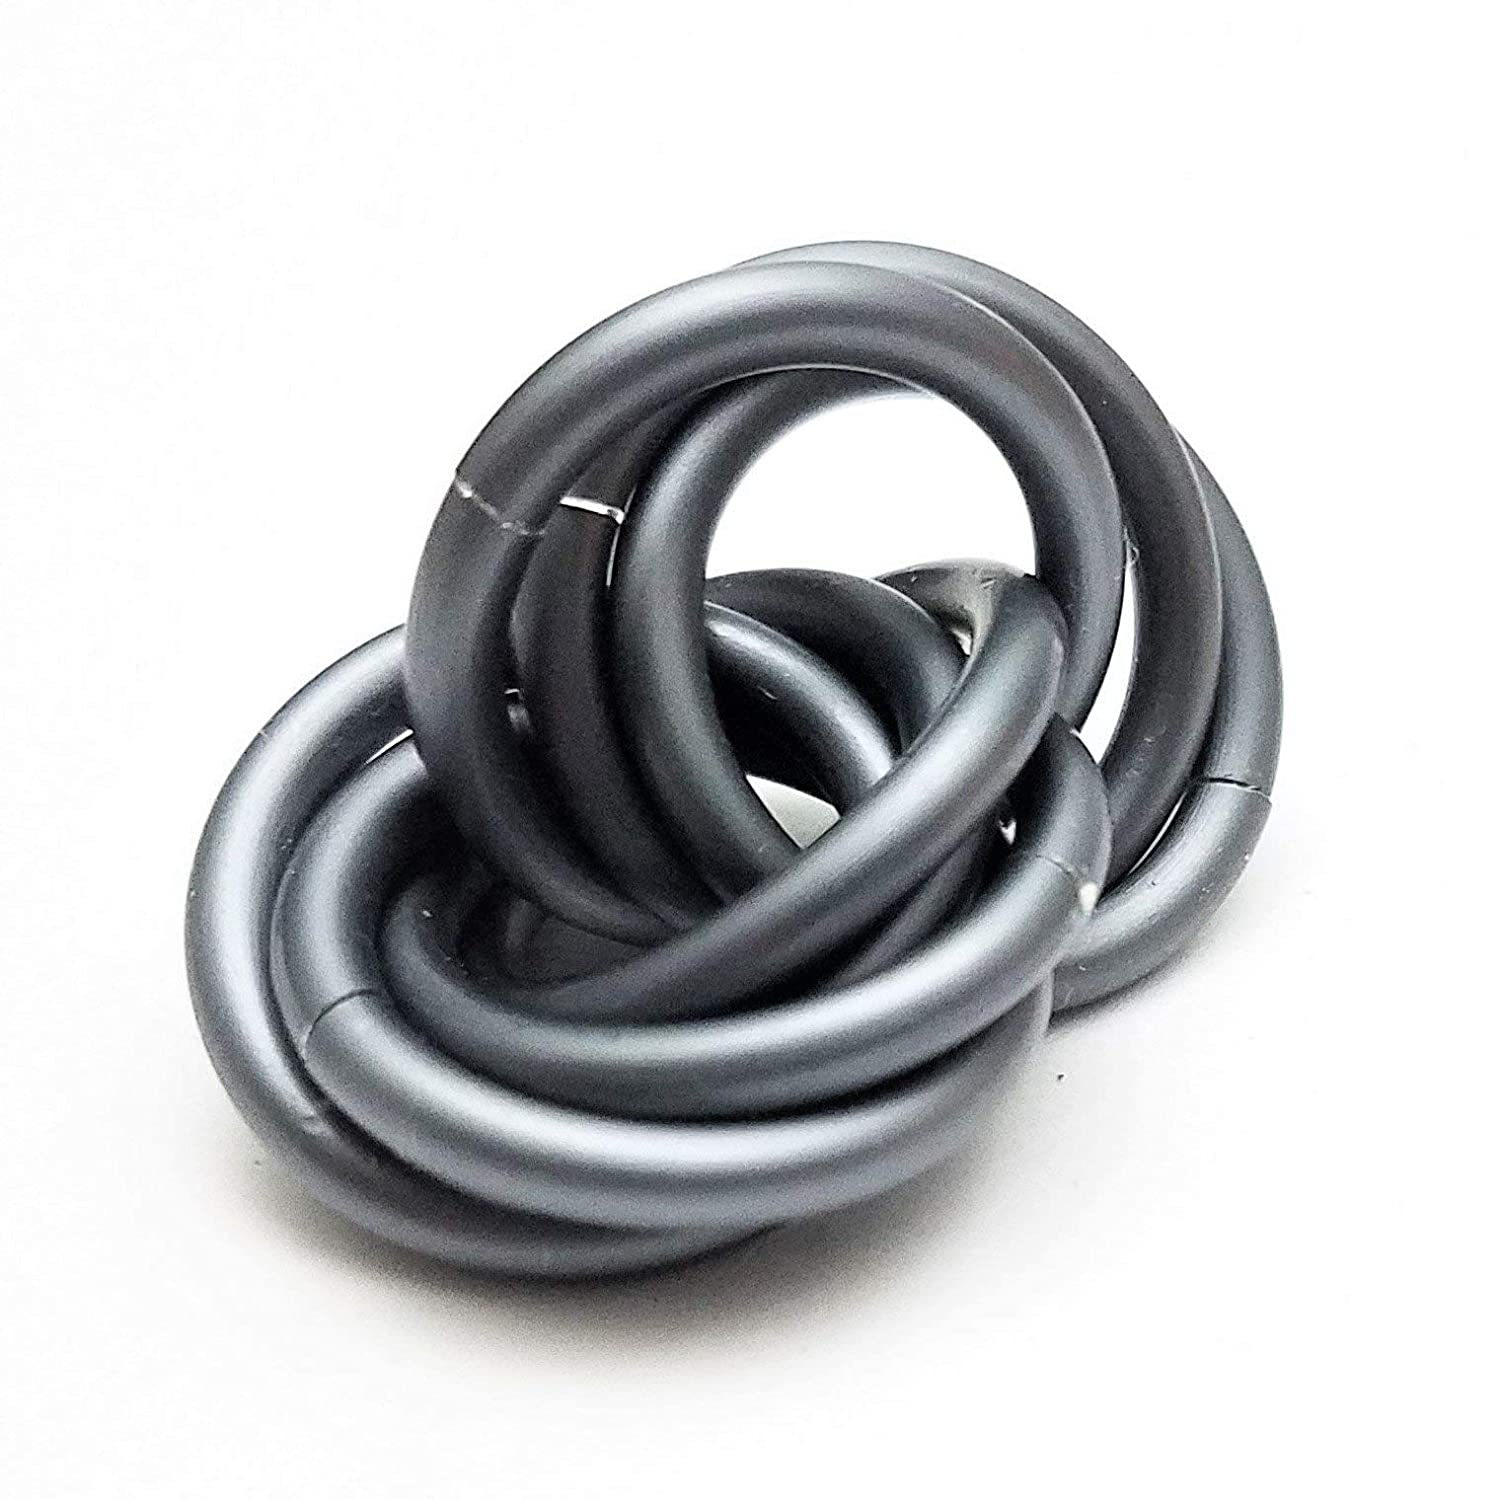 Half Möbii Slate: Small Mobius Hand Fidget Toy, Shiny Stress Rings for Restless Hands, Office Toy